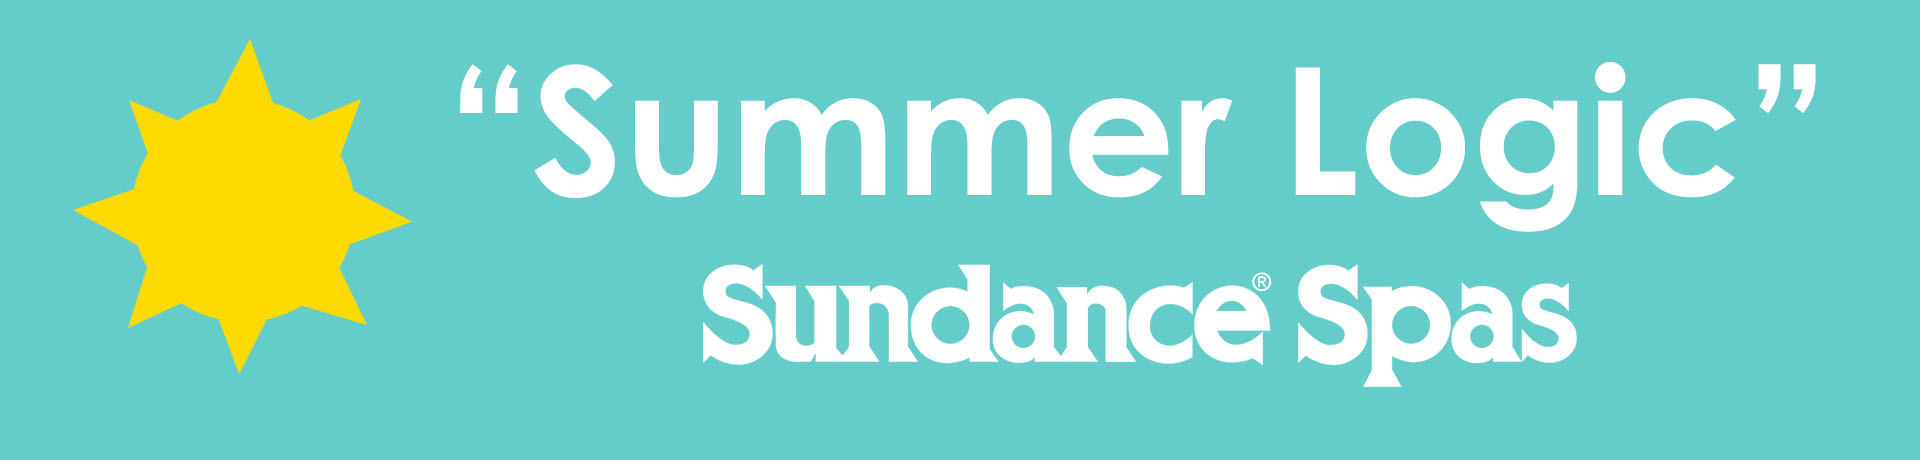 Summer Logic: What you need to know if you're a Sundance Owner